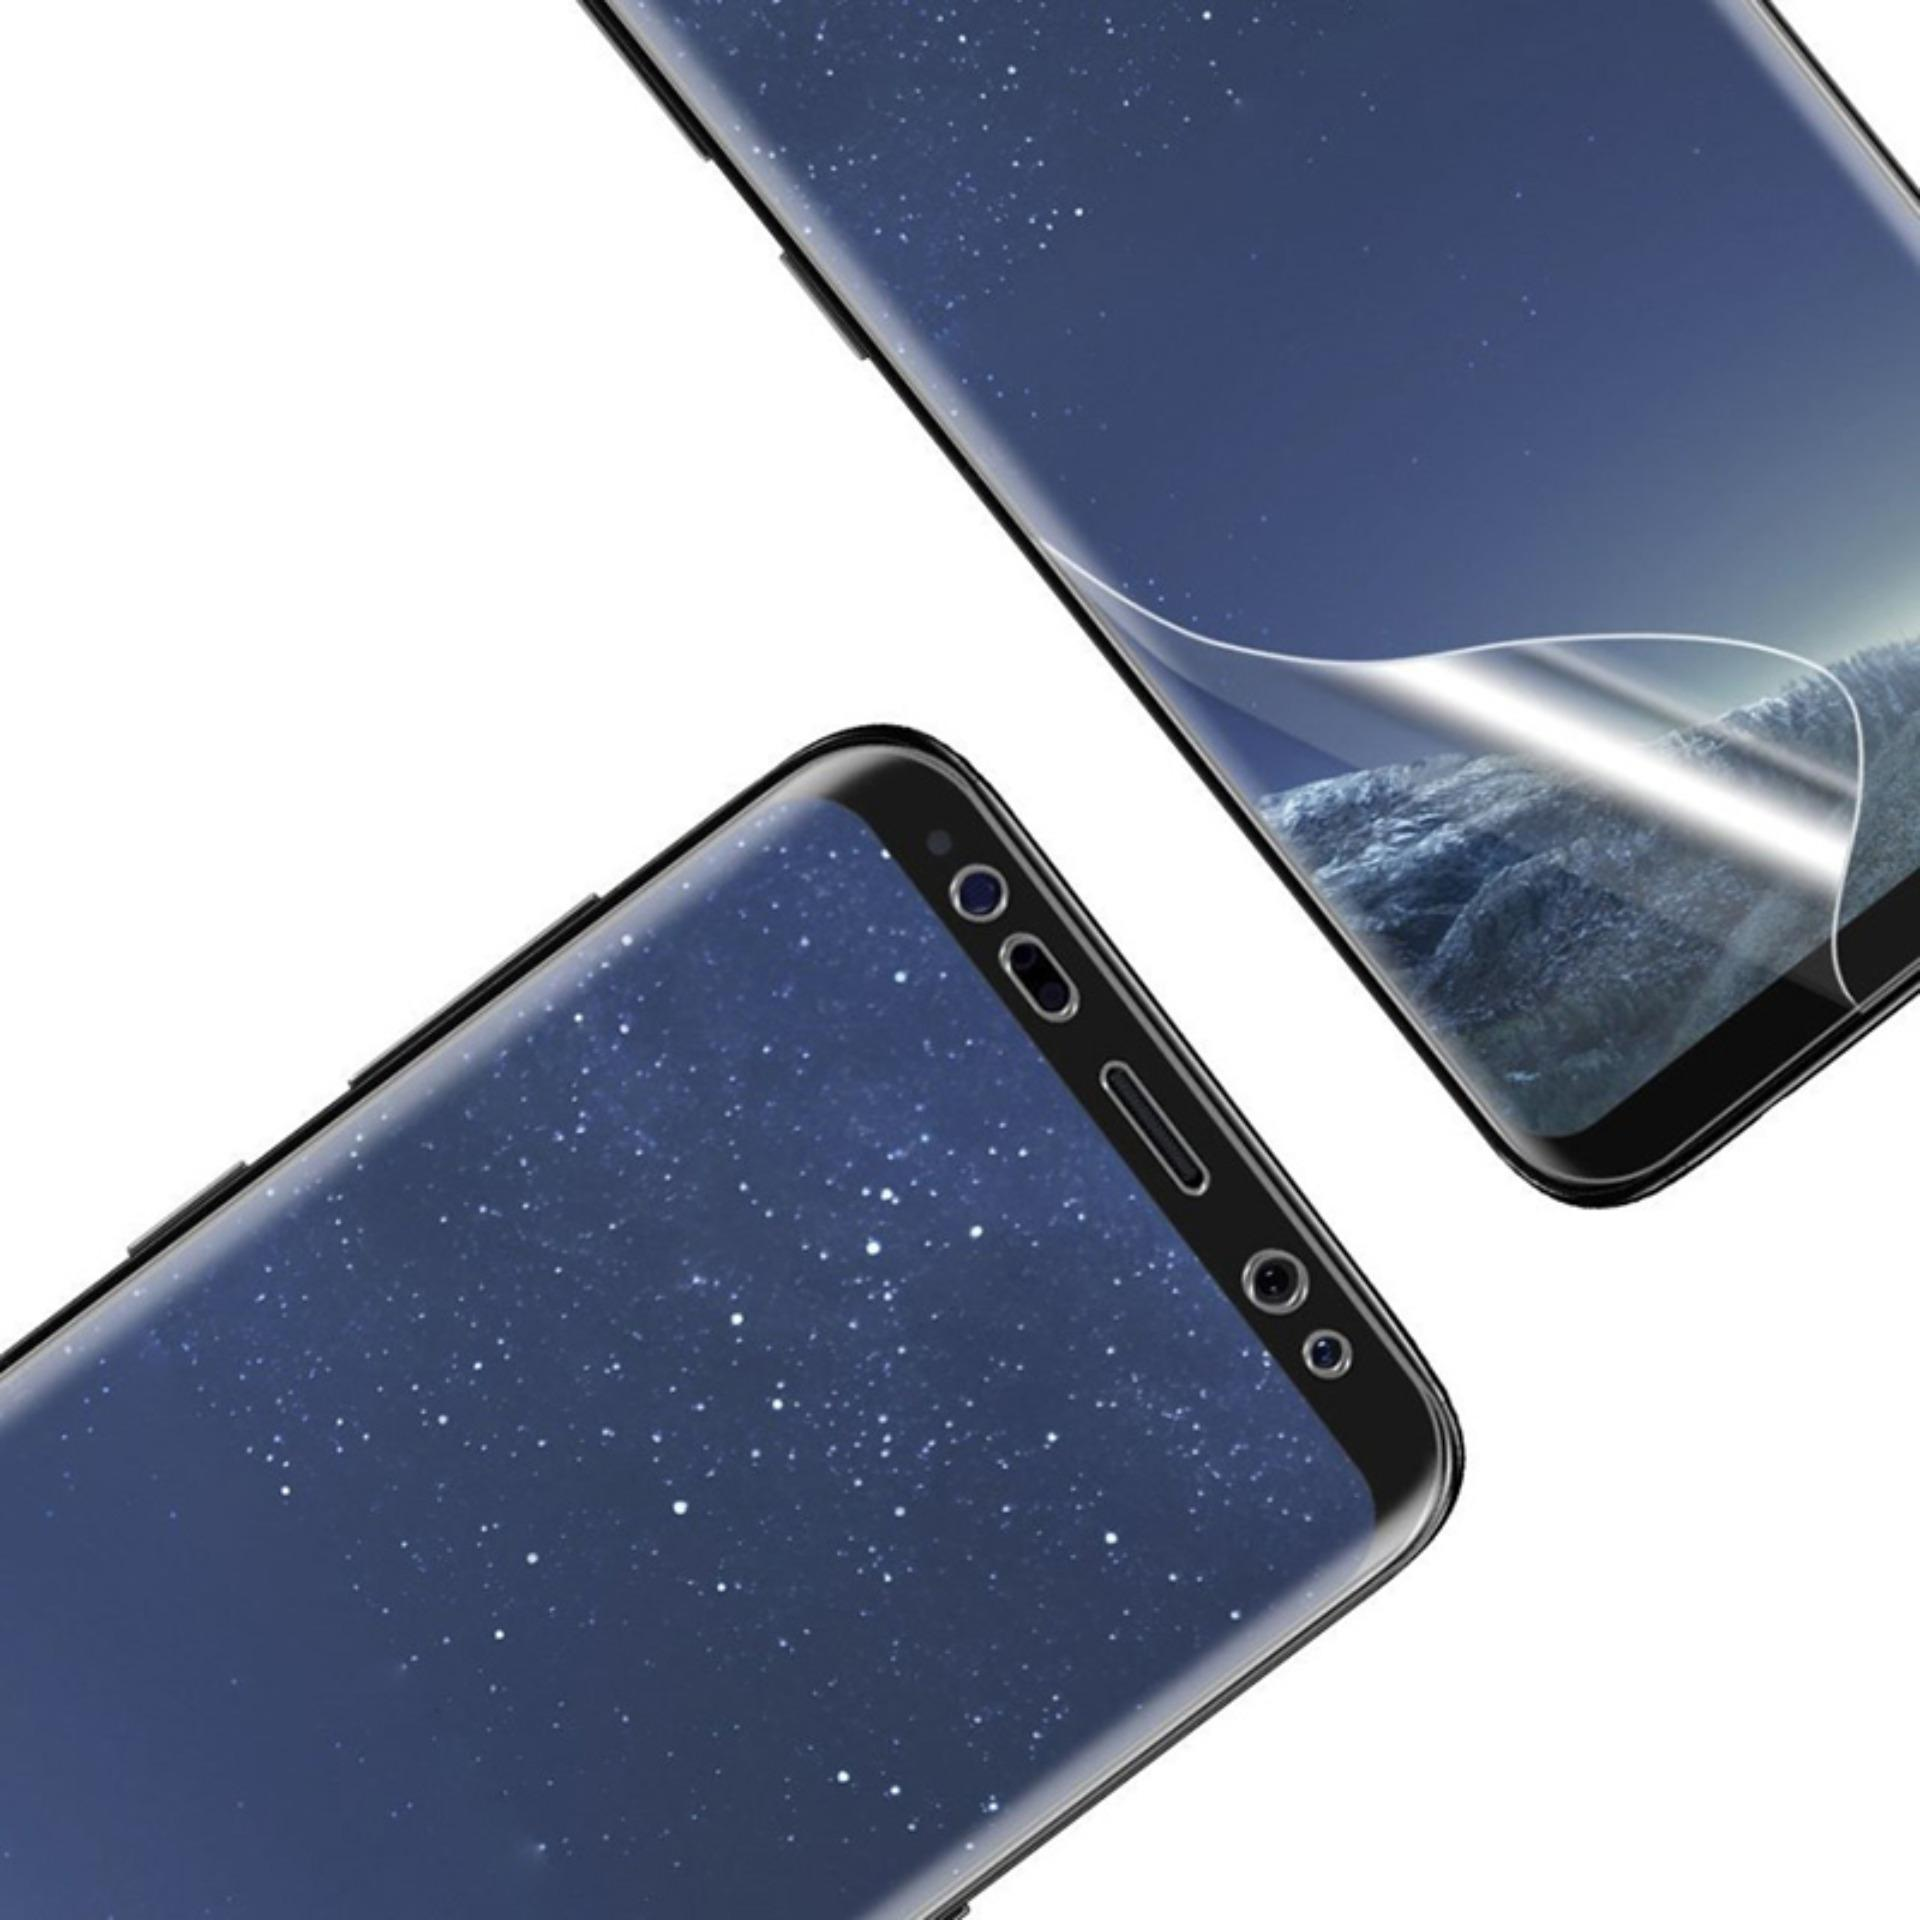 ... Samsung Galaxy S9 PLUS Screenguard PET Full Cover Screen Protector Not Tempered Glass (Clear) ...